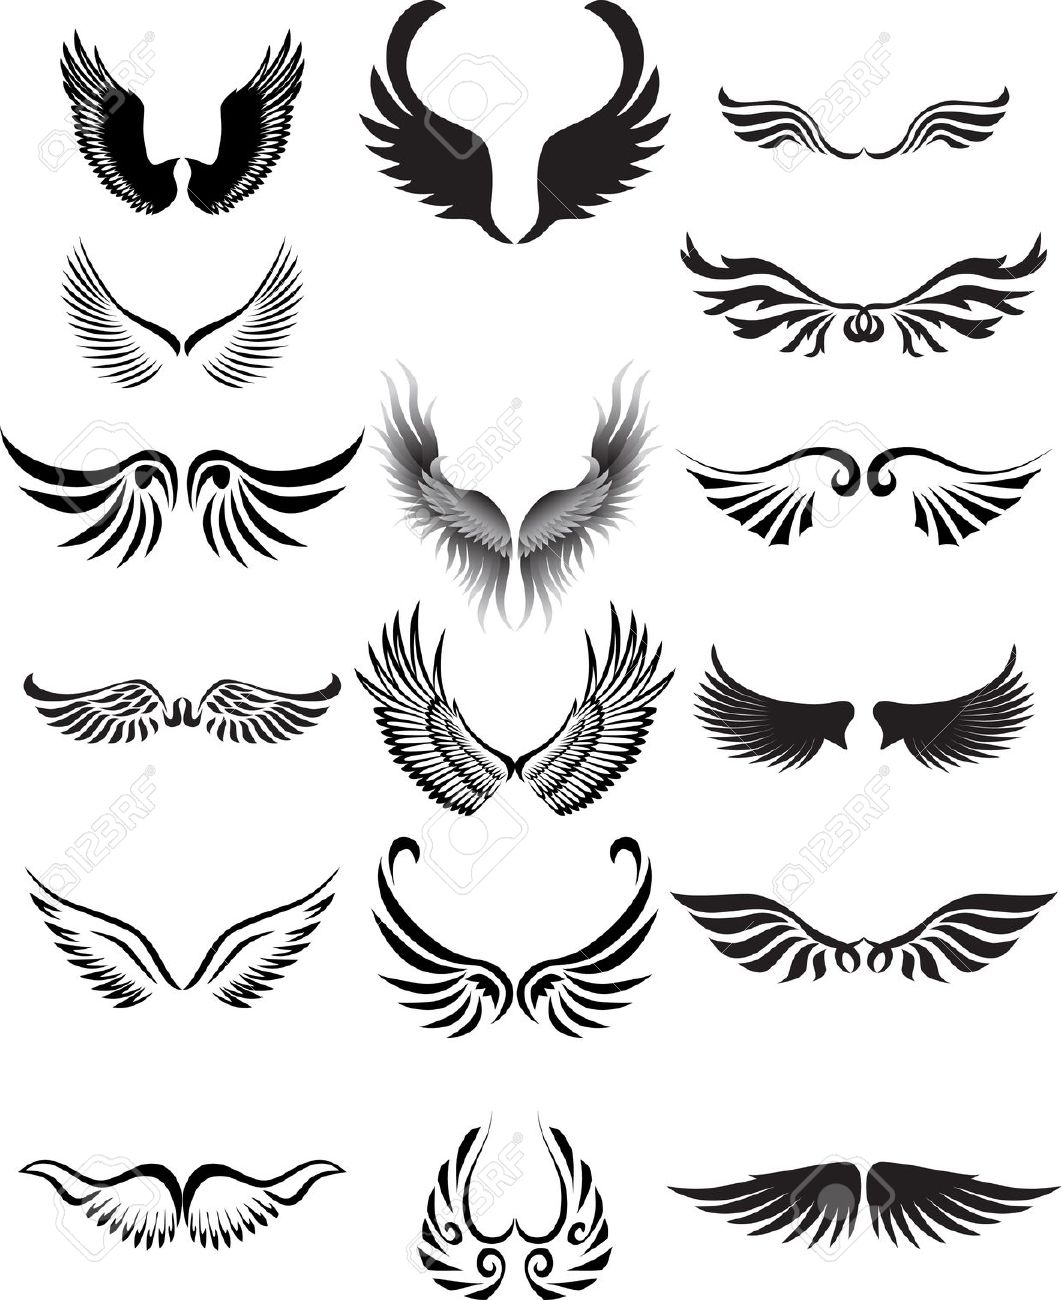 Halo clipart tribal  Pinterest to Places Visit